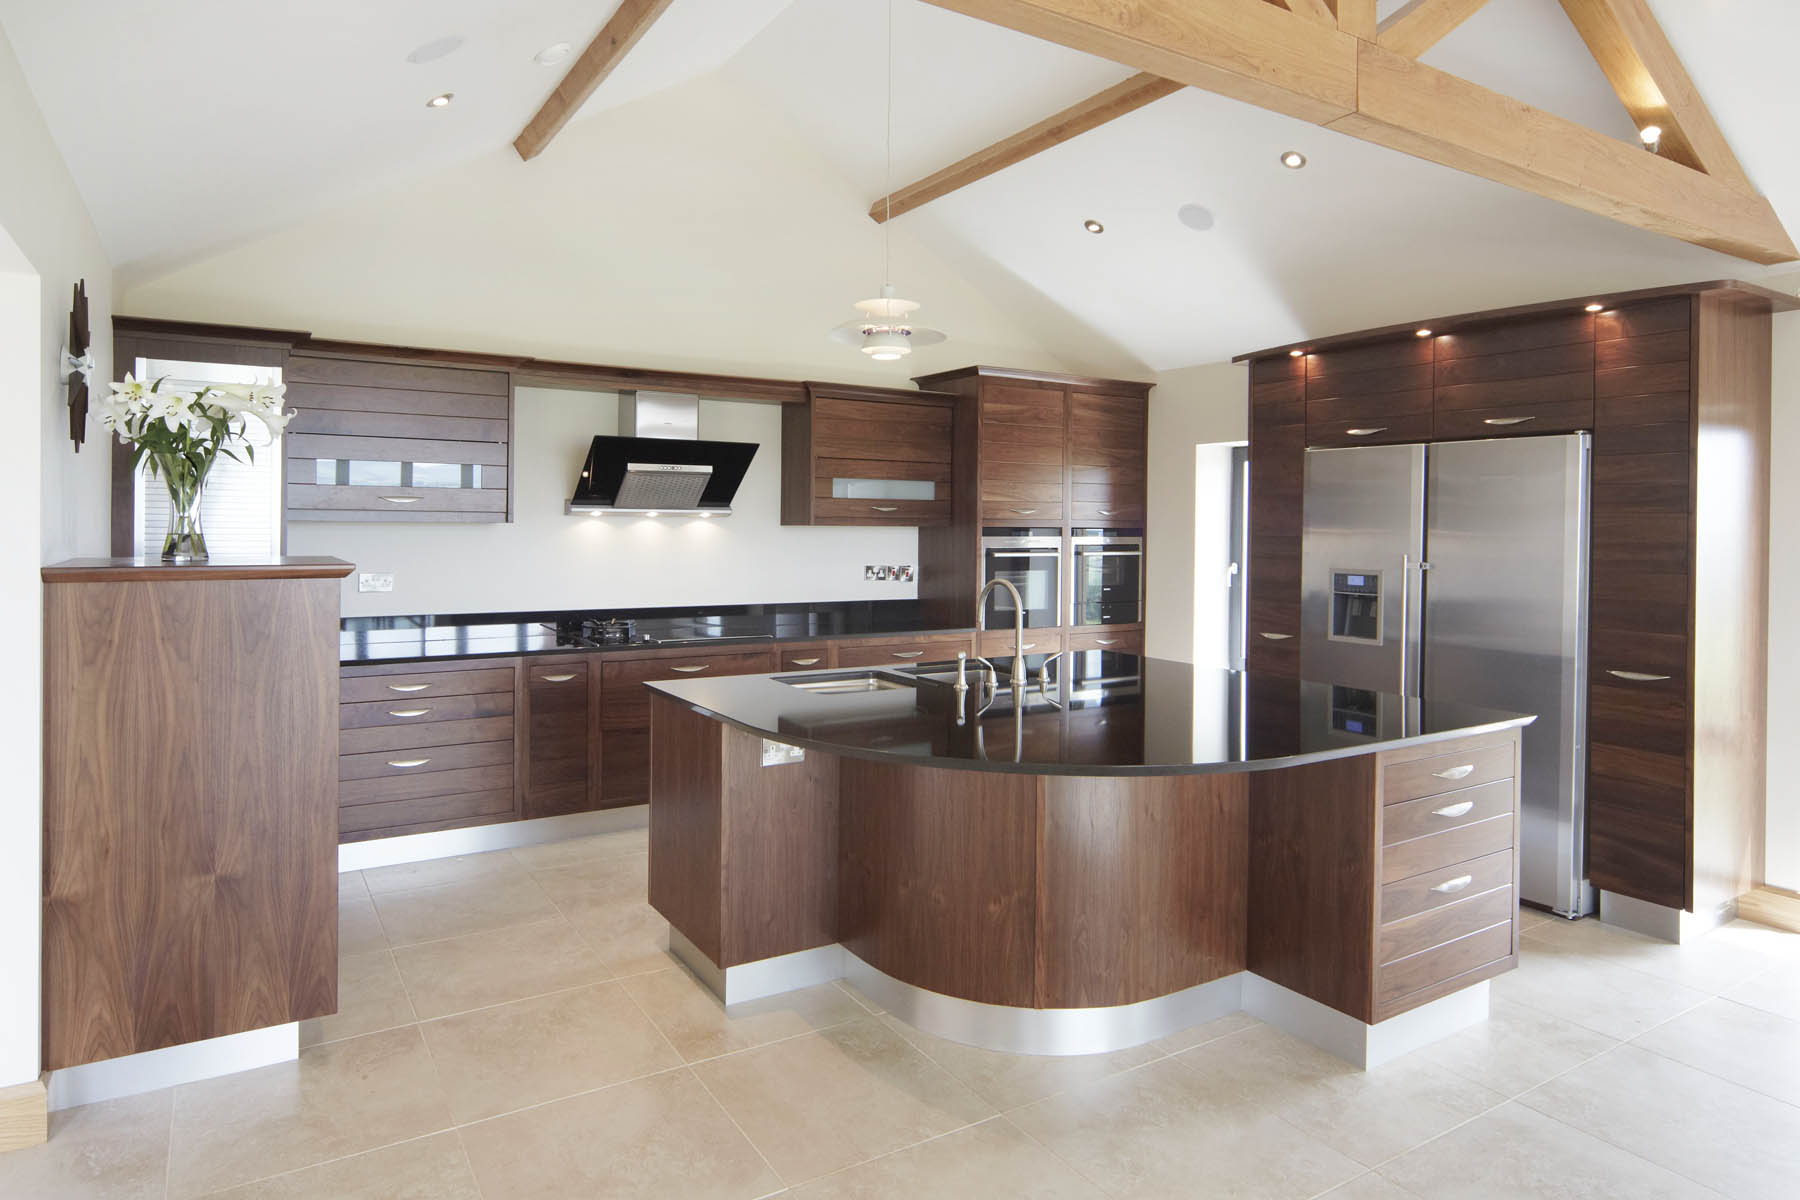 Kitchens california remodeling inc for Kitchen interior images